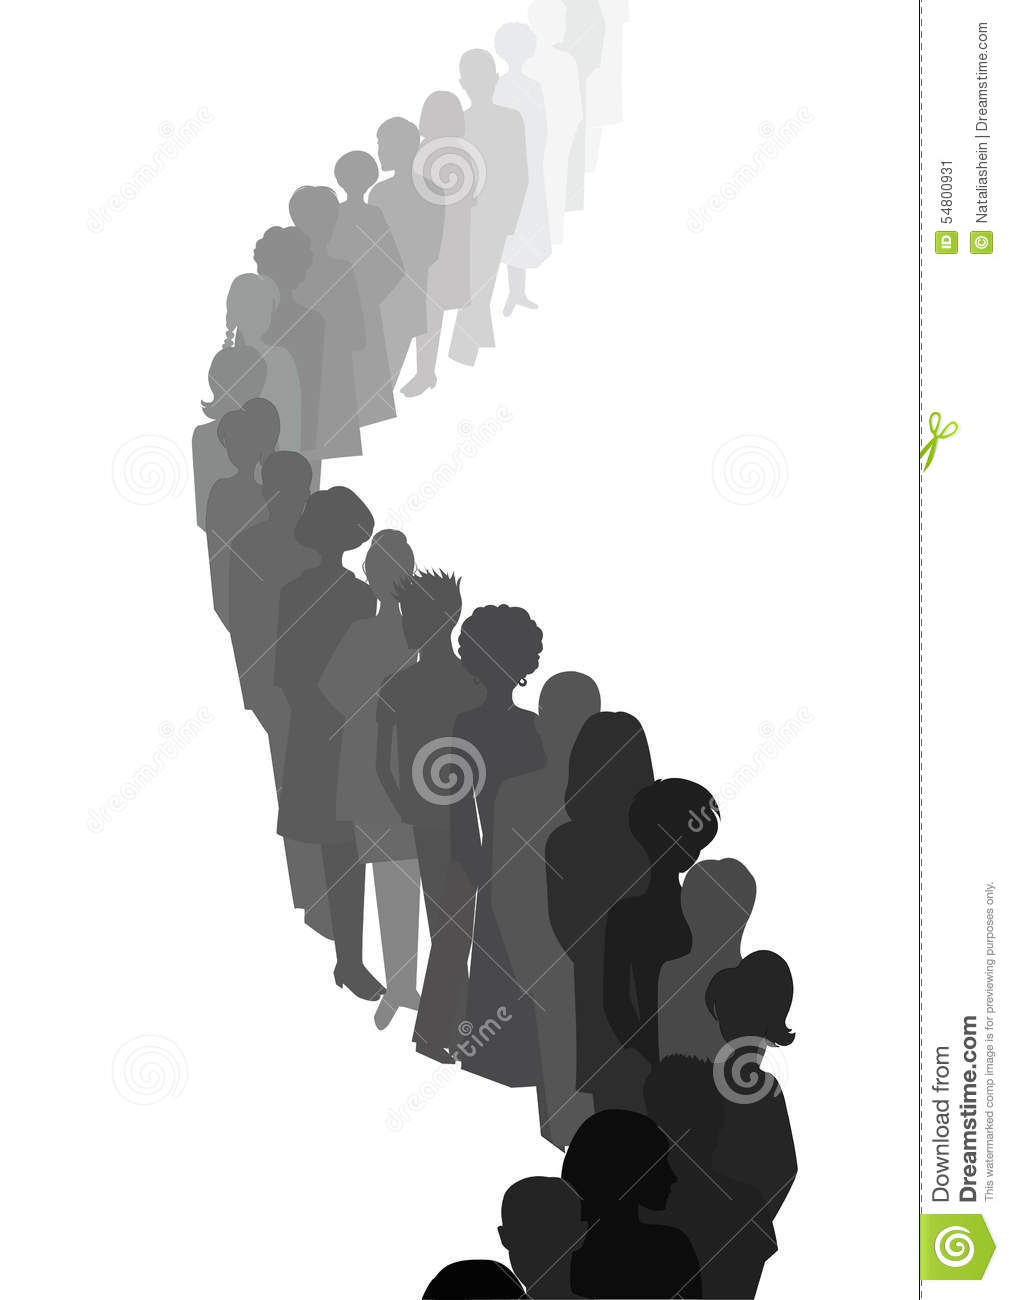 Long queue. People silhouettes